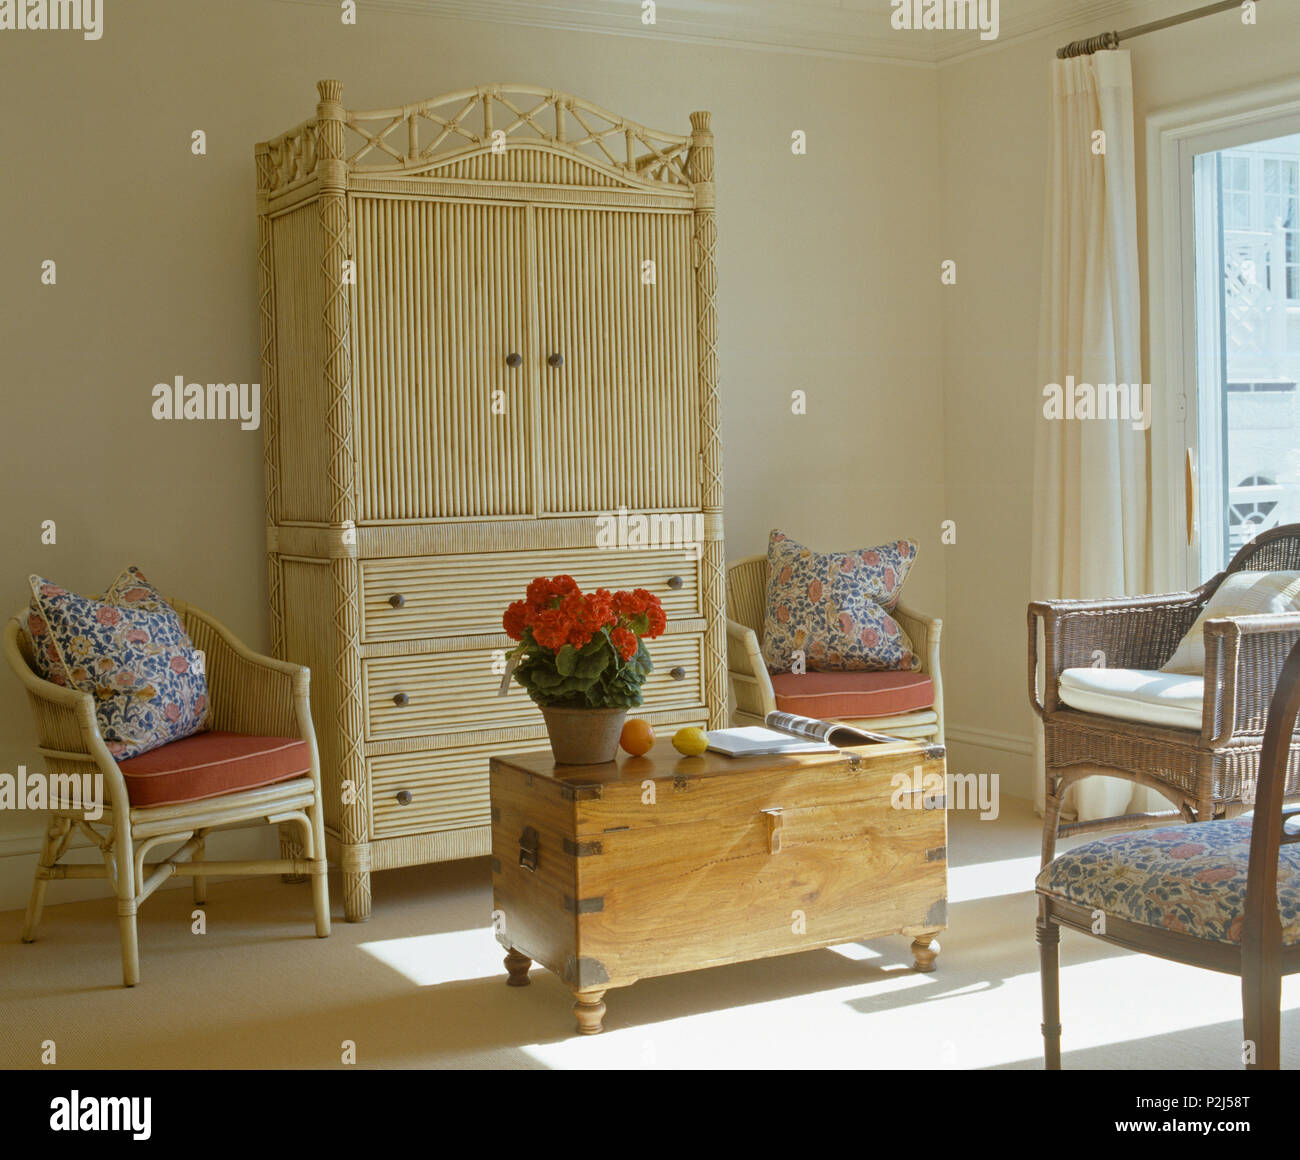 Cream Bamboo Secretaire Cabinet And Pine Chest In Corner Of Sunlit Bedroom  With Cane Armchairs With Floral Cushions